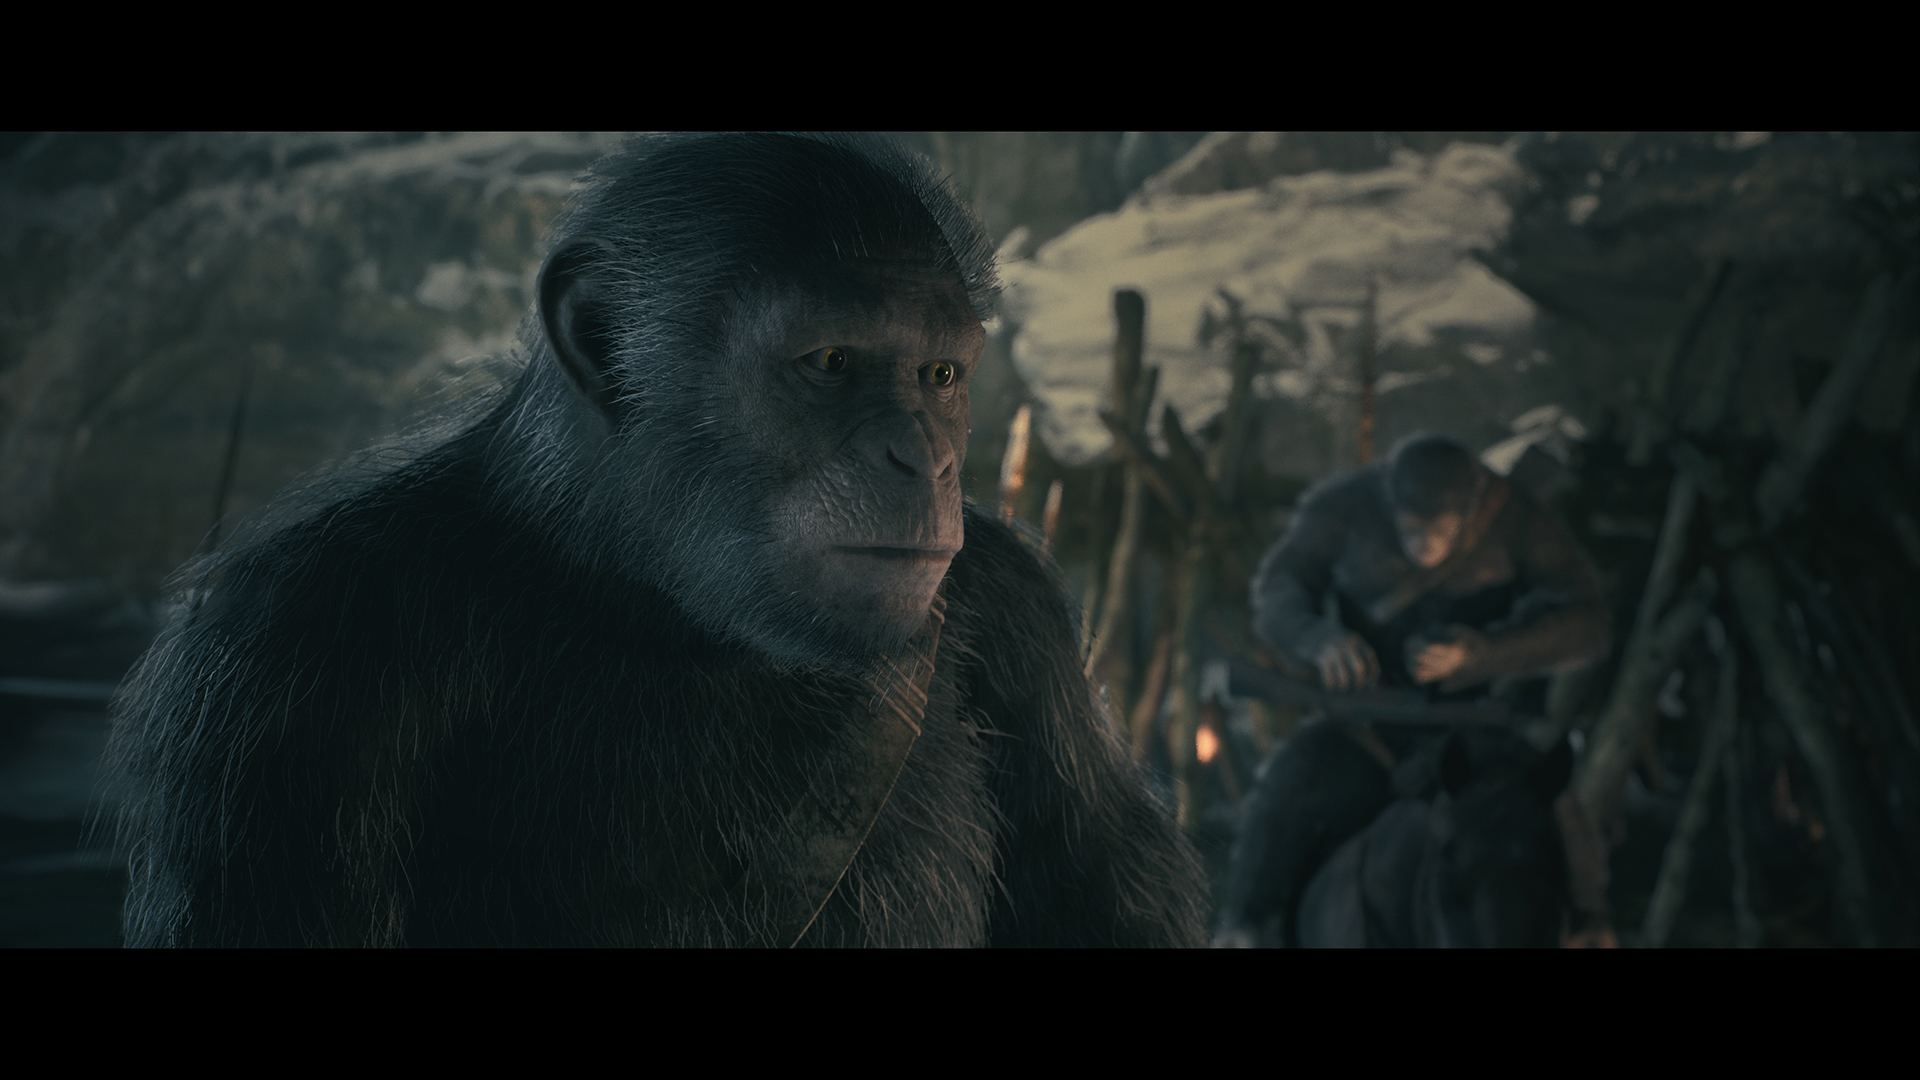 Planet of the apes orgy did not